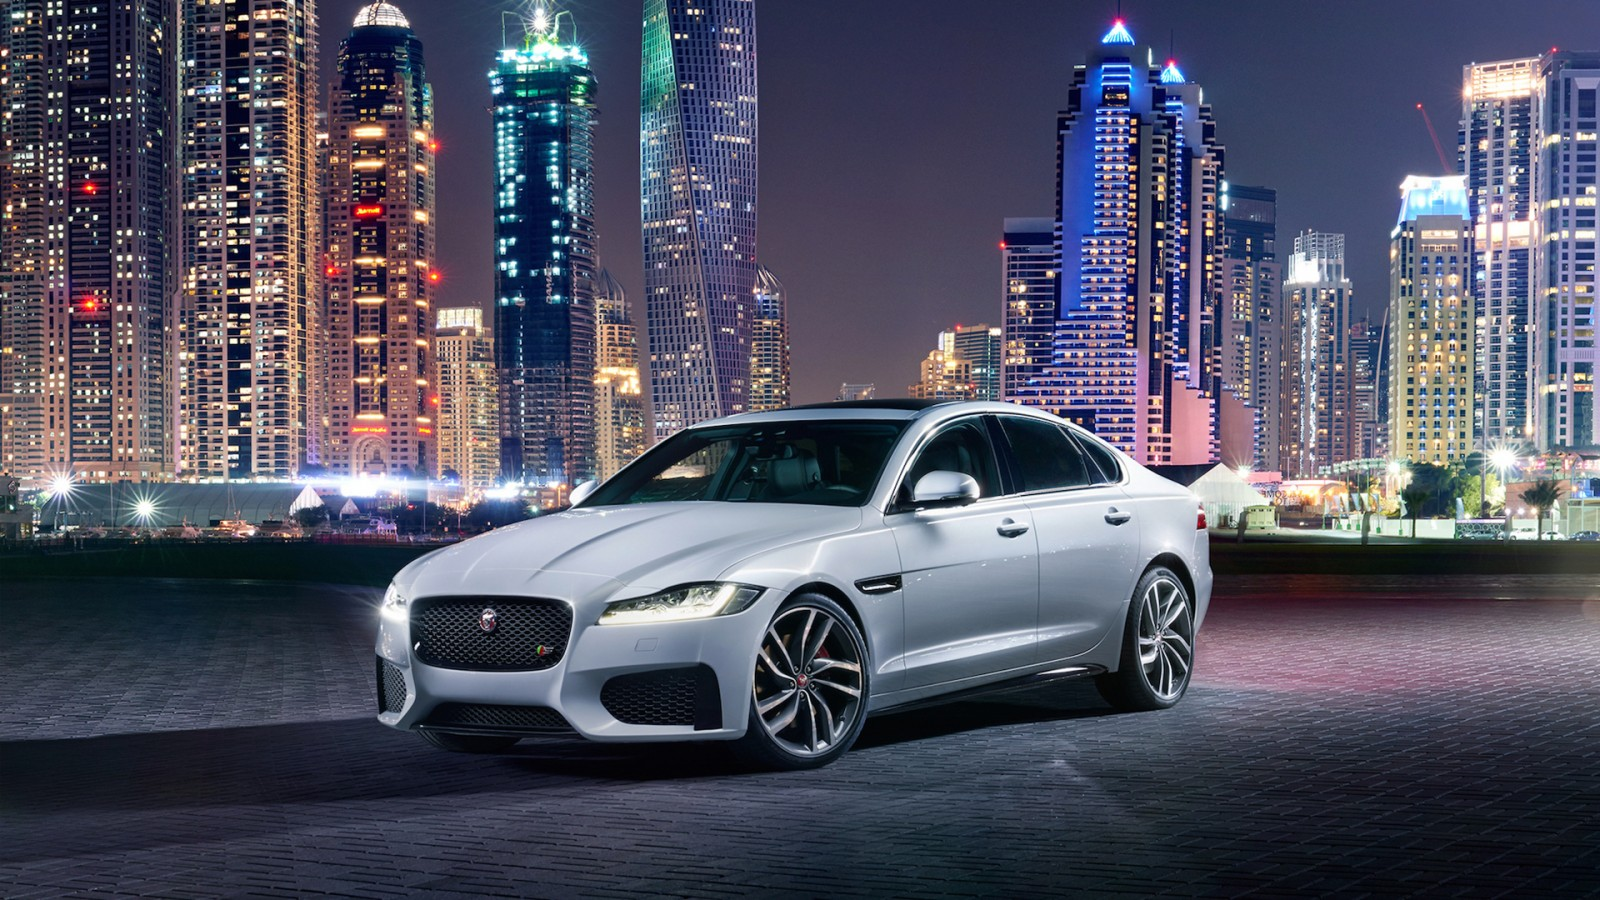 Jaguar Car Wallpaper Wallpapers High Quality: 2016 Jaguar XF Wallpaper